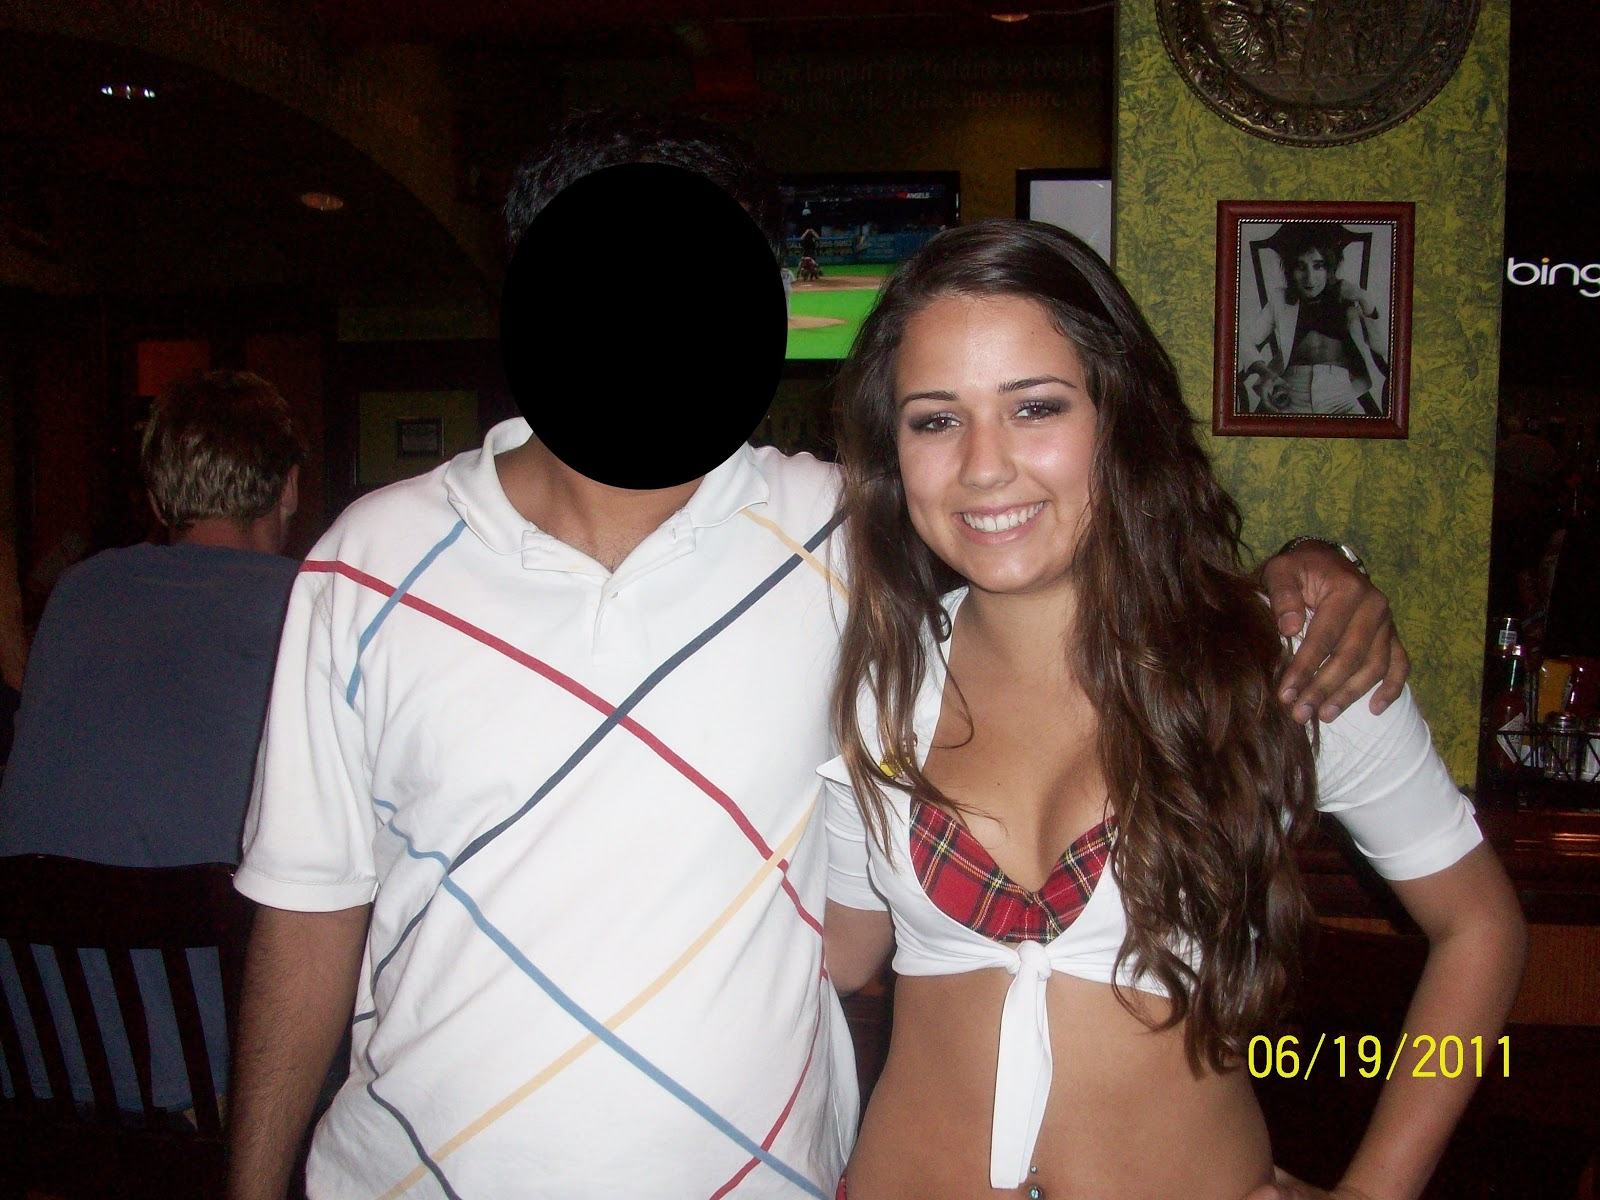 I Have Noticed Katie Several Times At The Long Beach Tilted Kilt This Was First Time Could Get Her Photo She Is Very Beautiful And Keeping Busy